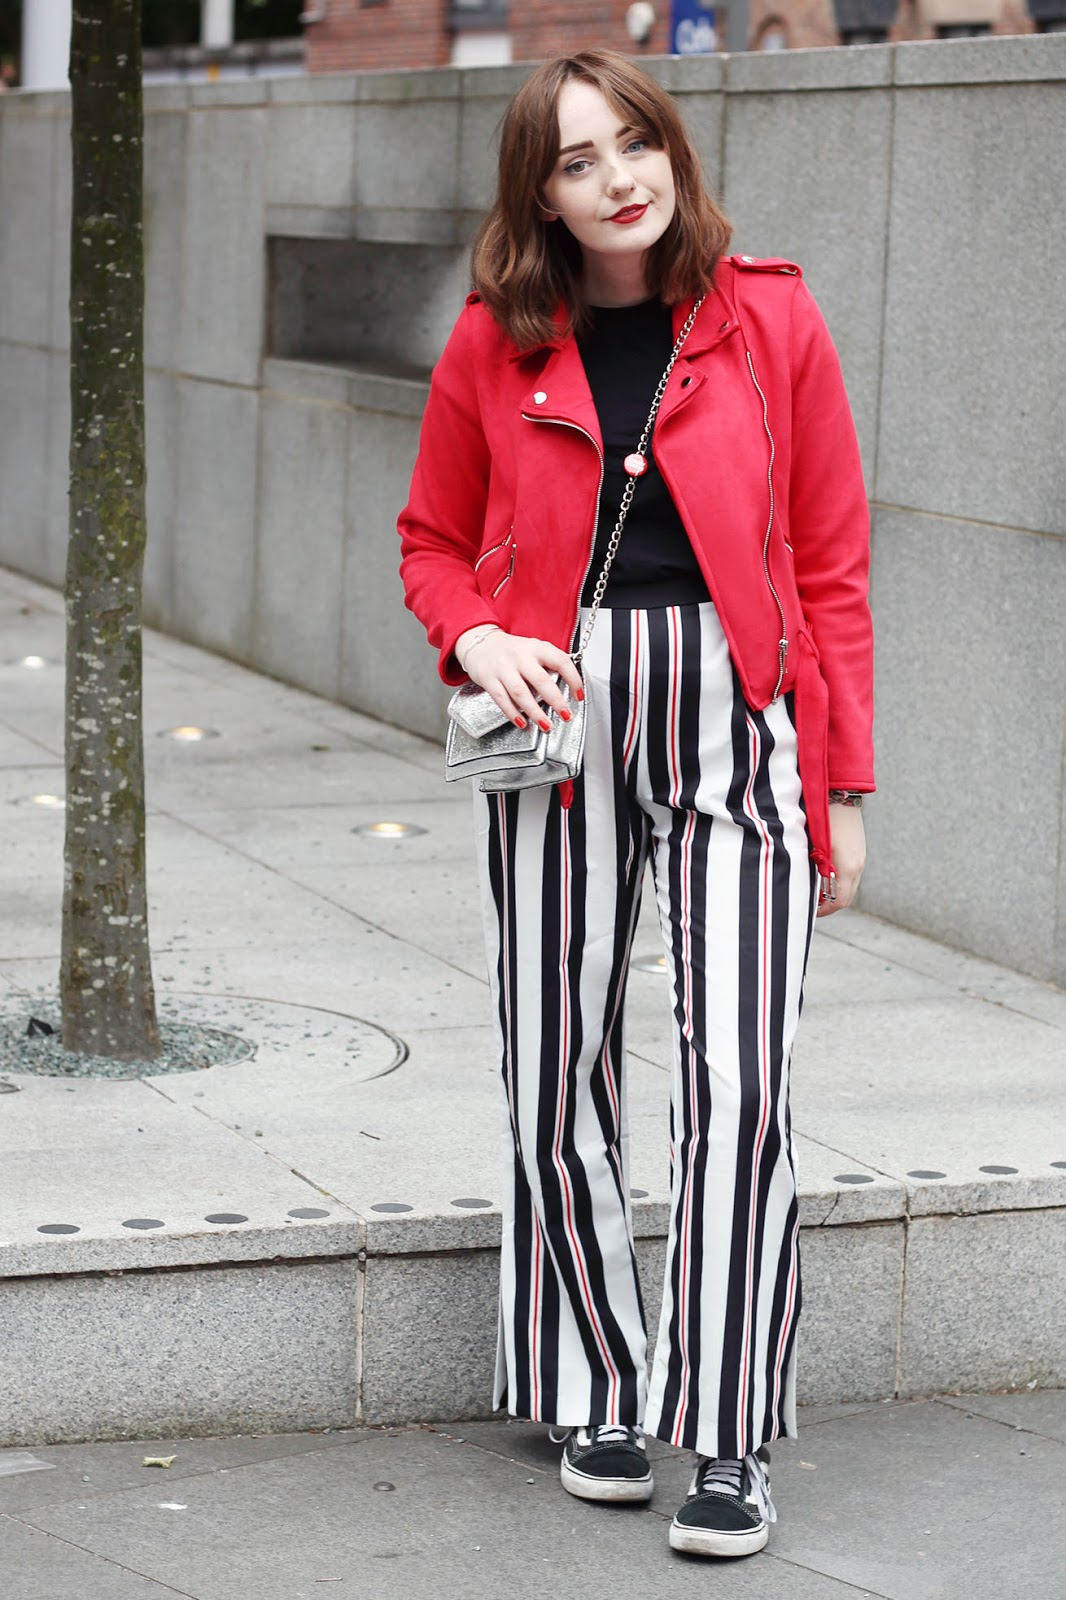 Liverpool style blogger Allie Davies wearing missy empire red biker jacket and striped trousers